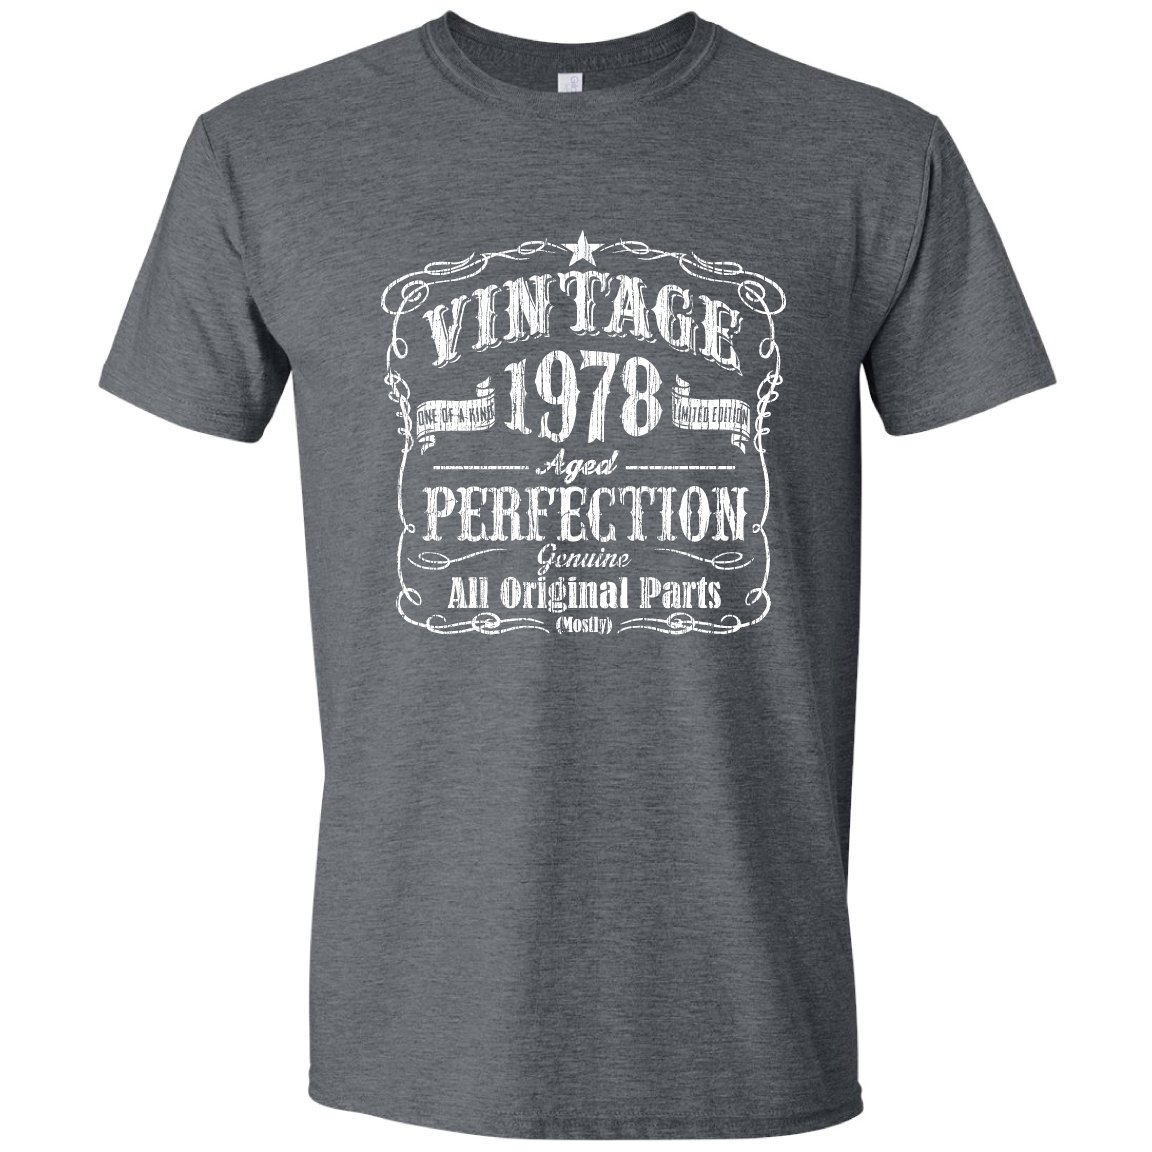 Born in 78 Birthday Shirt, Over The Hill, Bday Shirt for him, Vintage, Black, XL